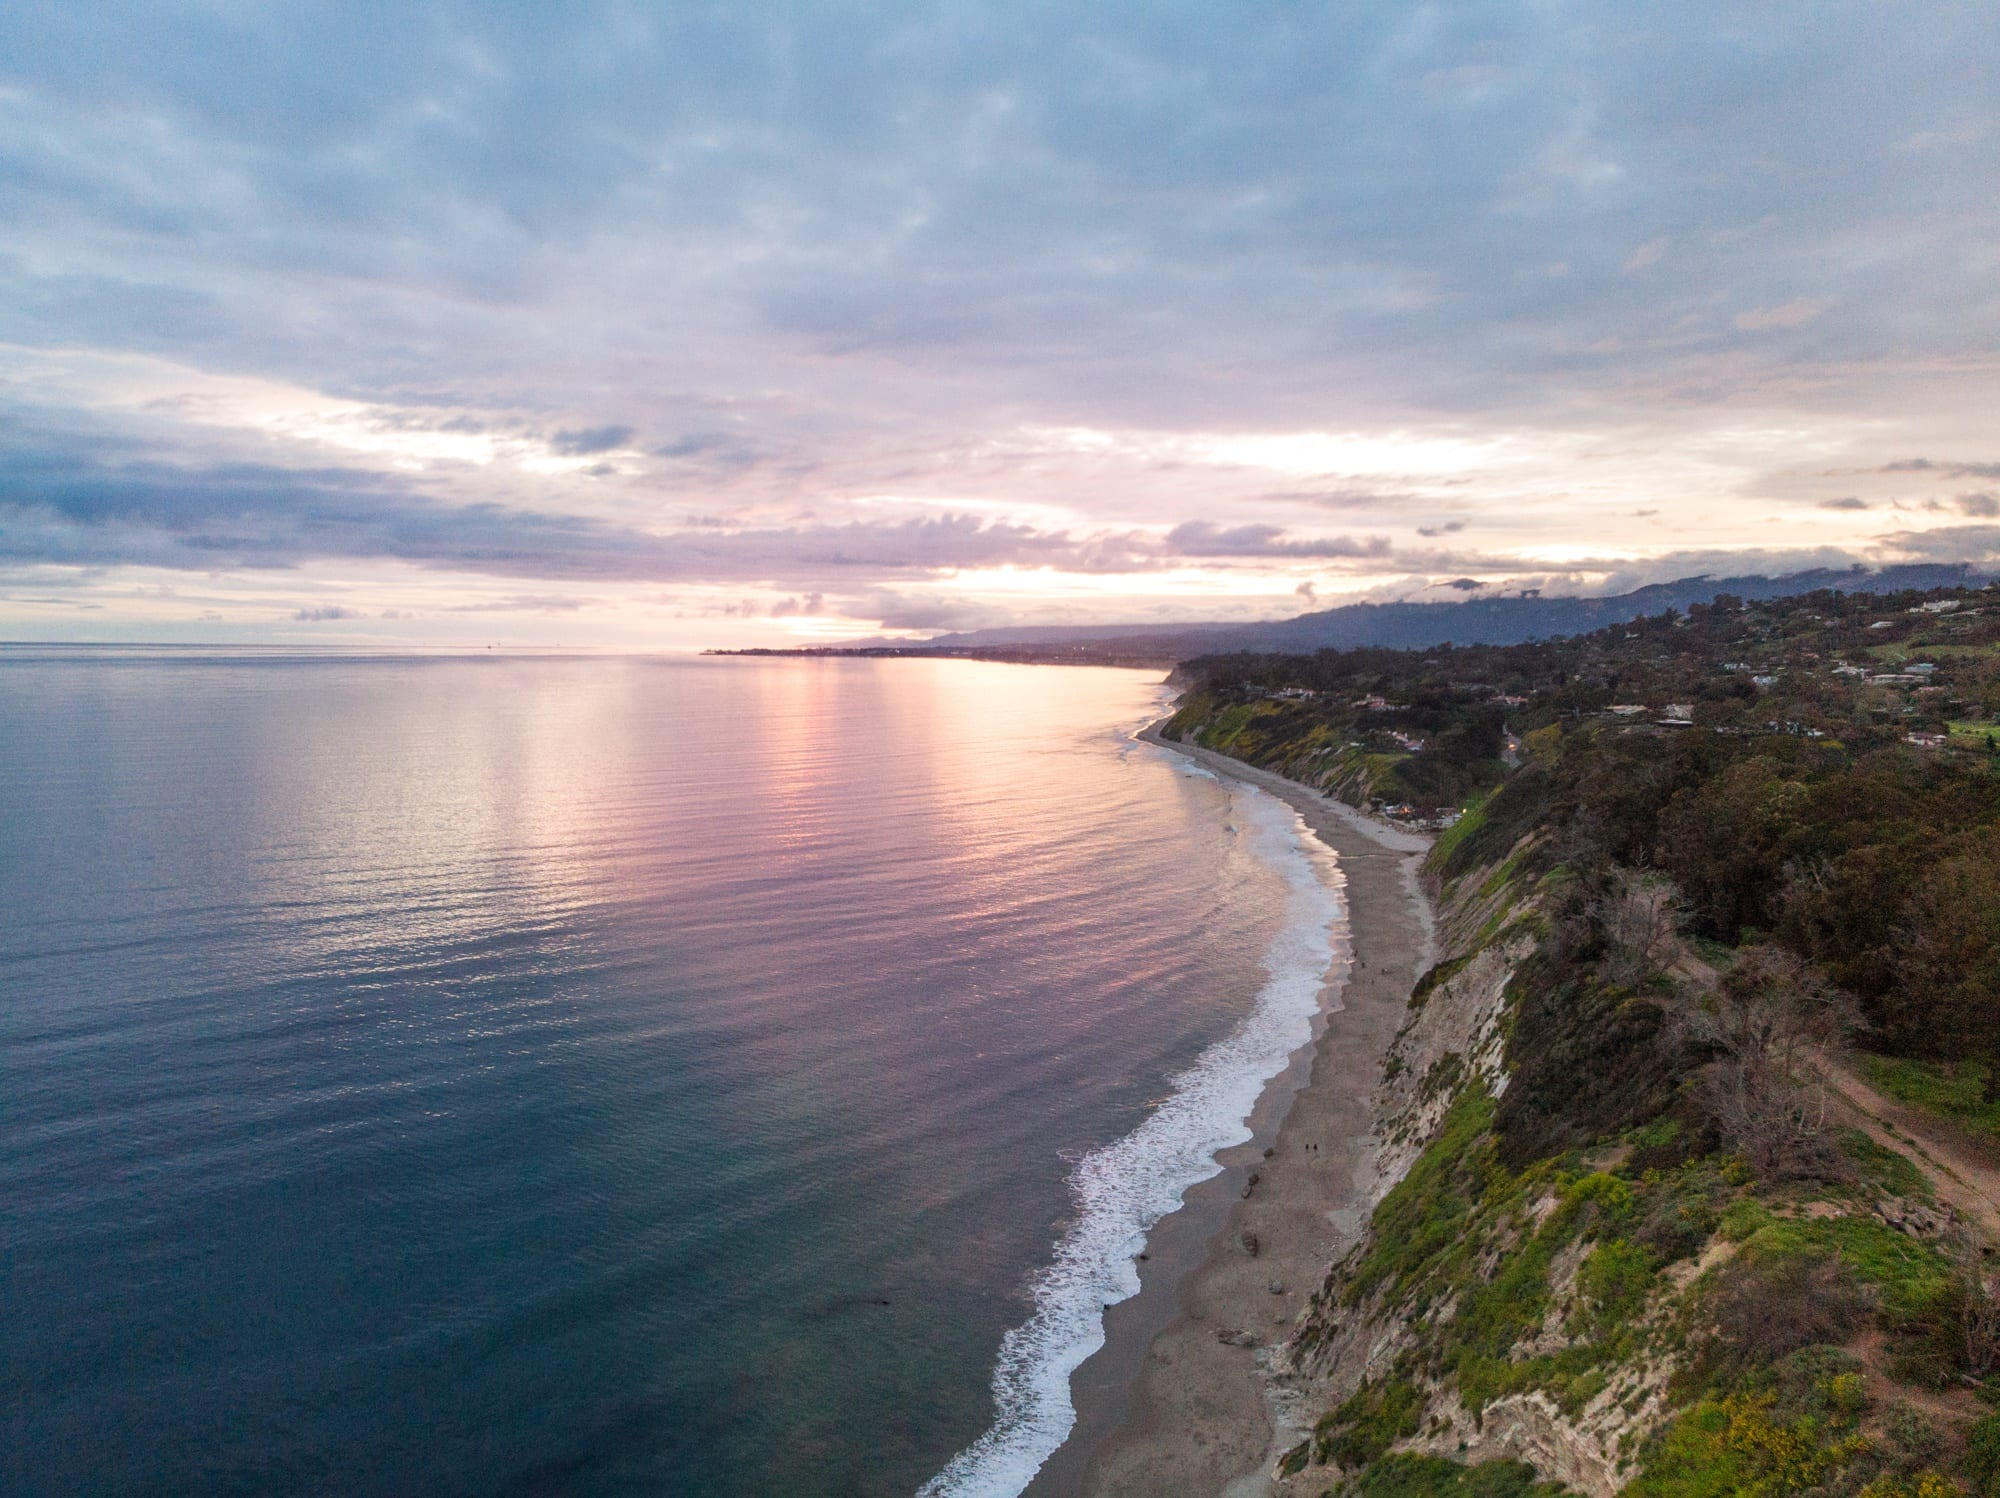 Santa Barbara Hendrys Beach // A 6 day california coast road trip itinerary that combines outdoor adventure travel and local California beach town culture.